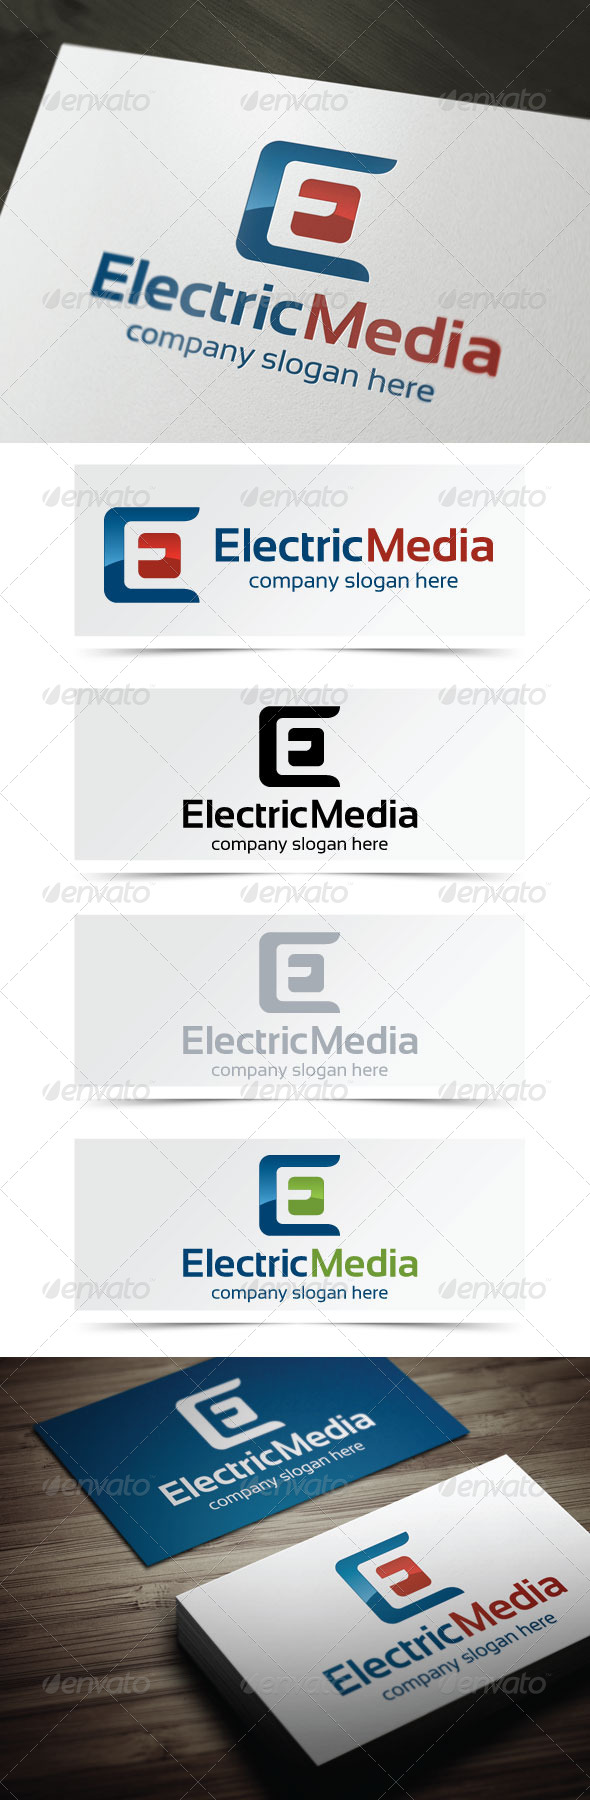 Electric Media - Letters Logo Templates